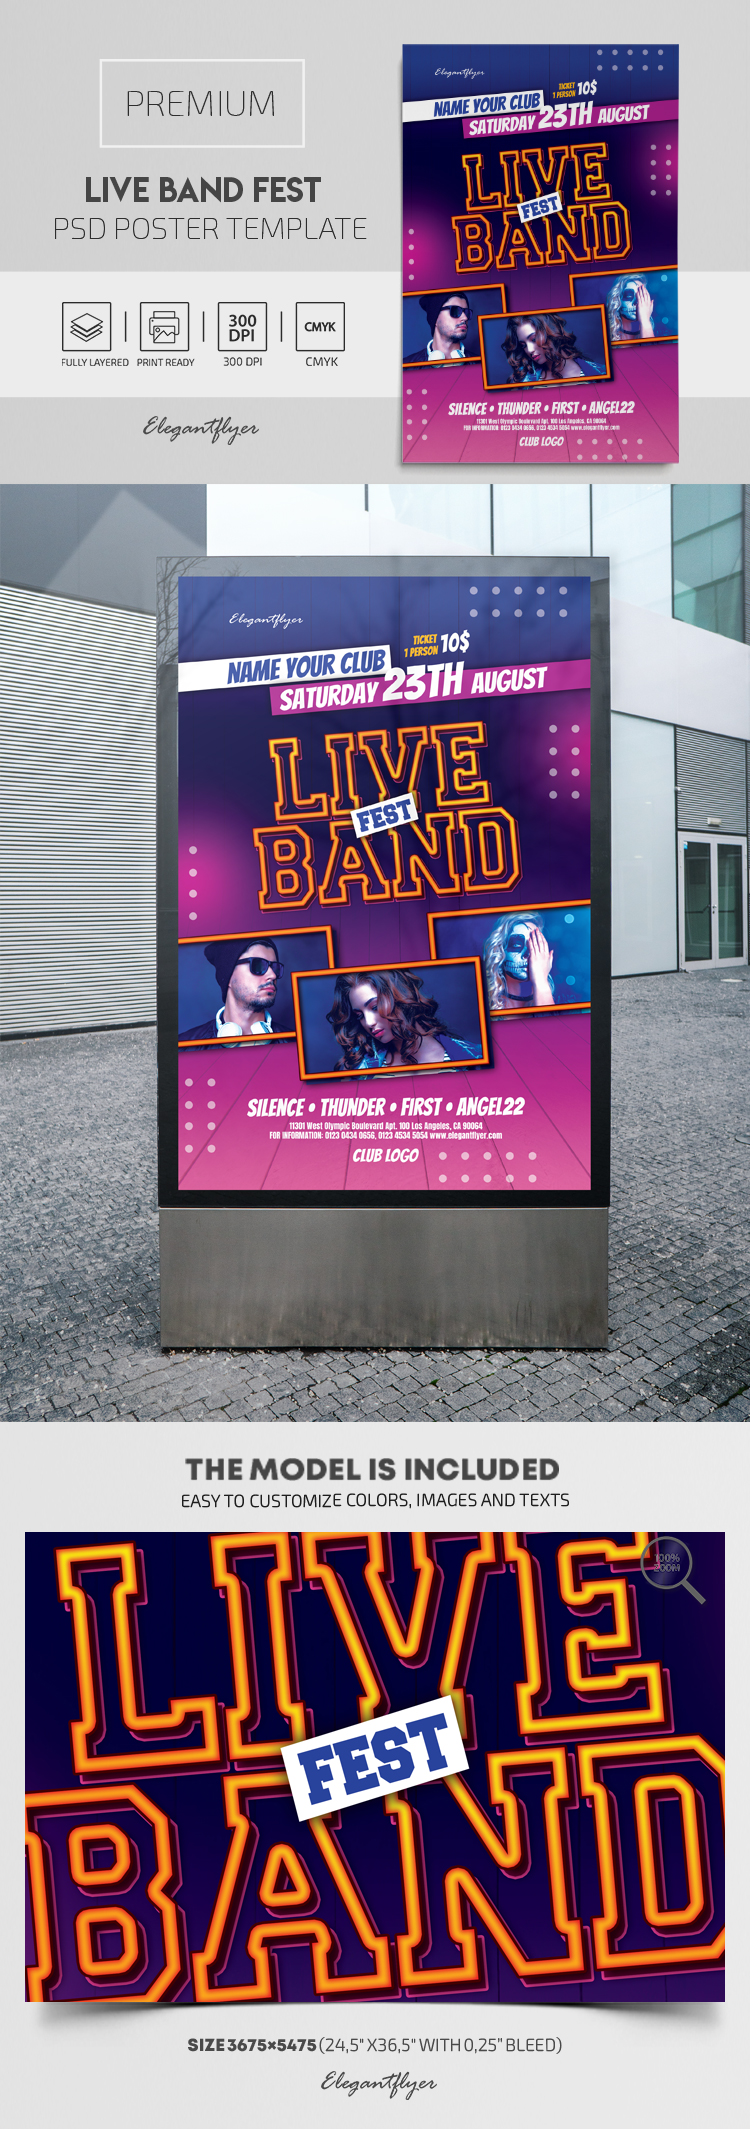 Live Band Fest – Premium PSD Poster Template